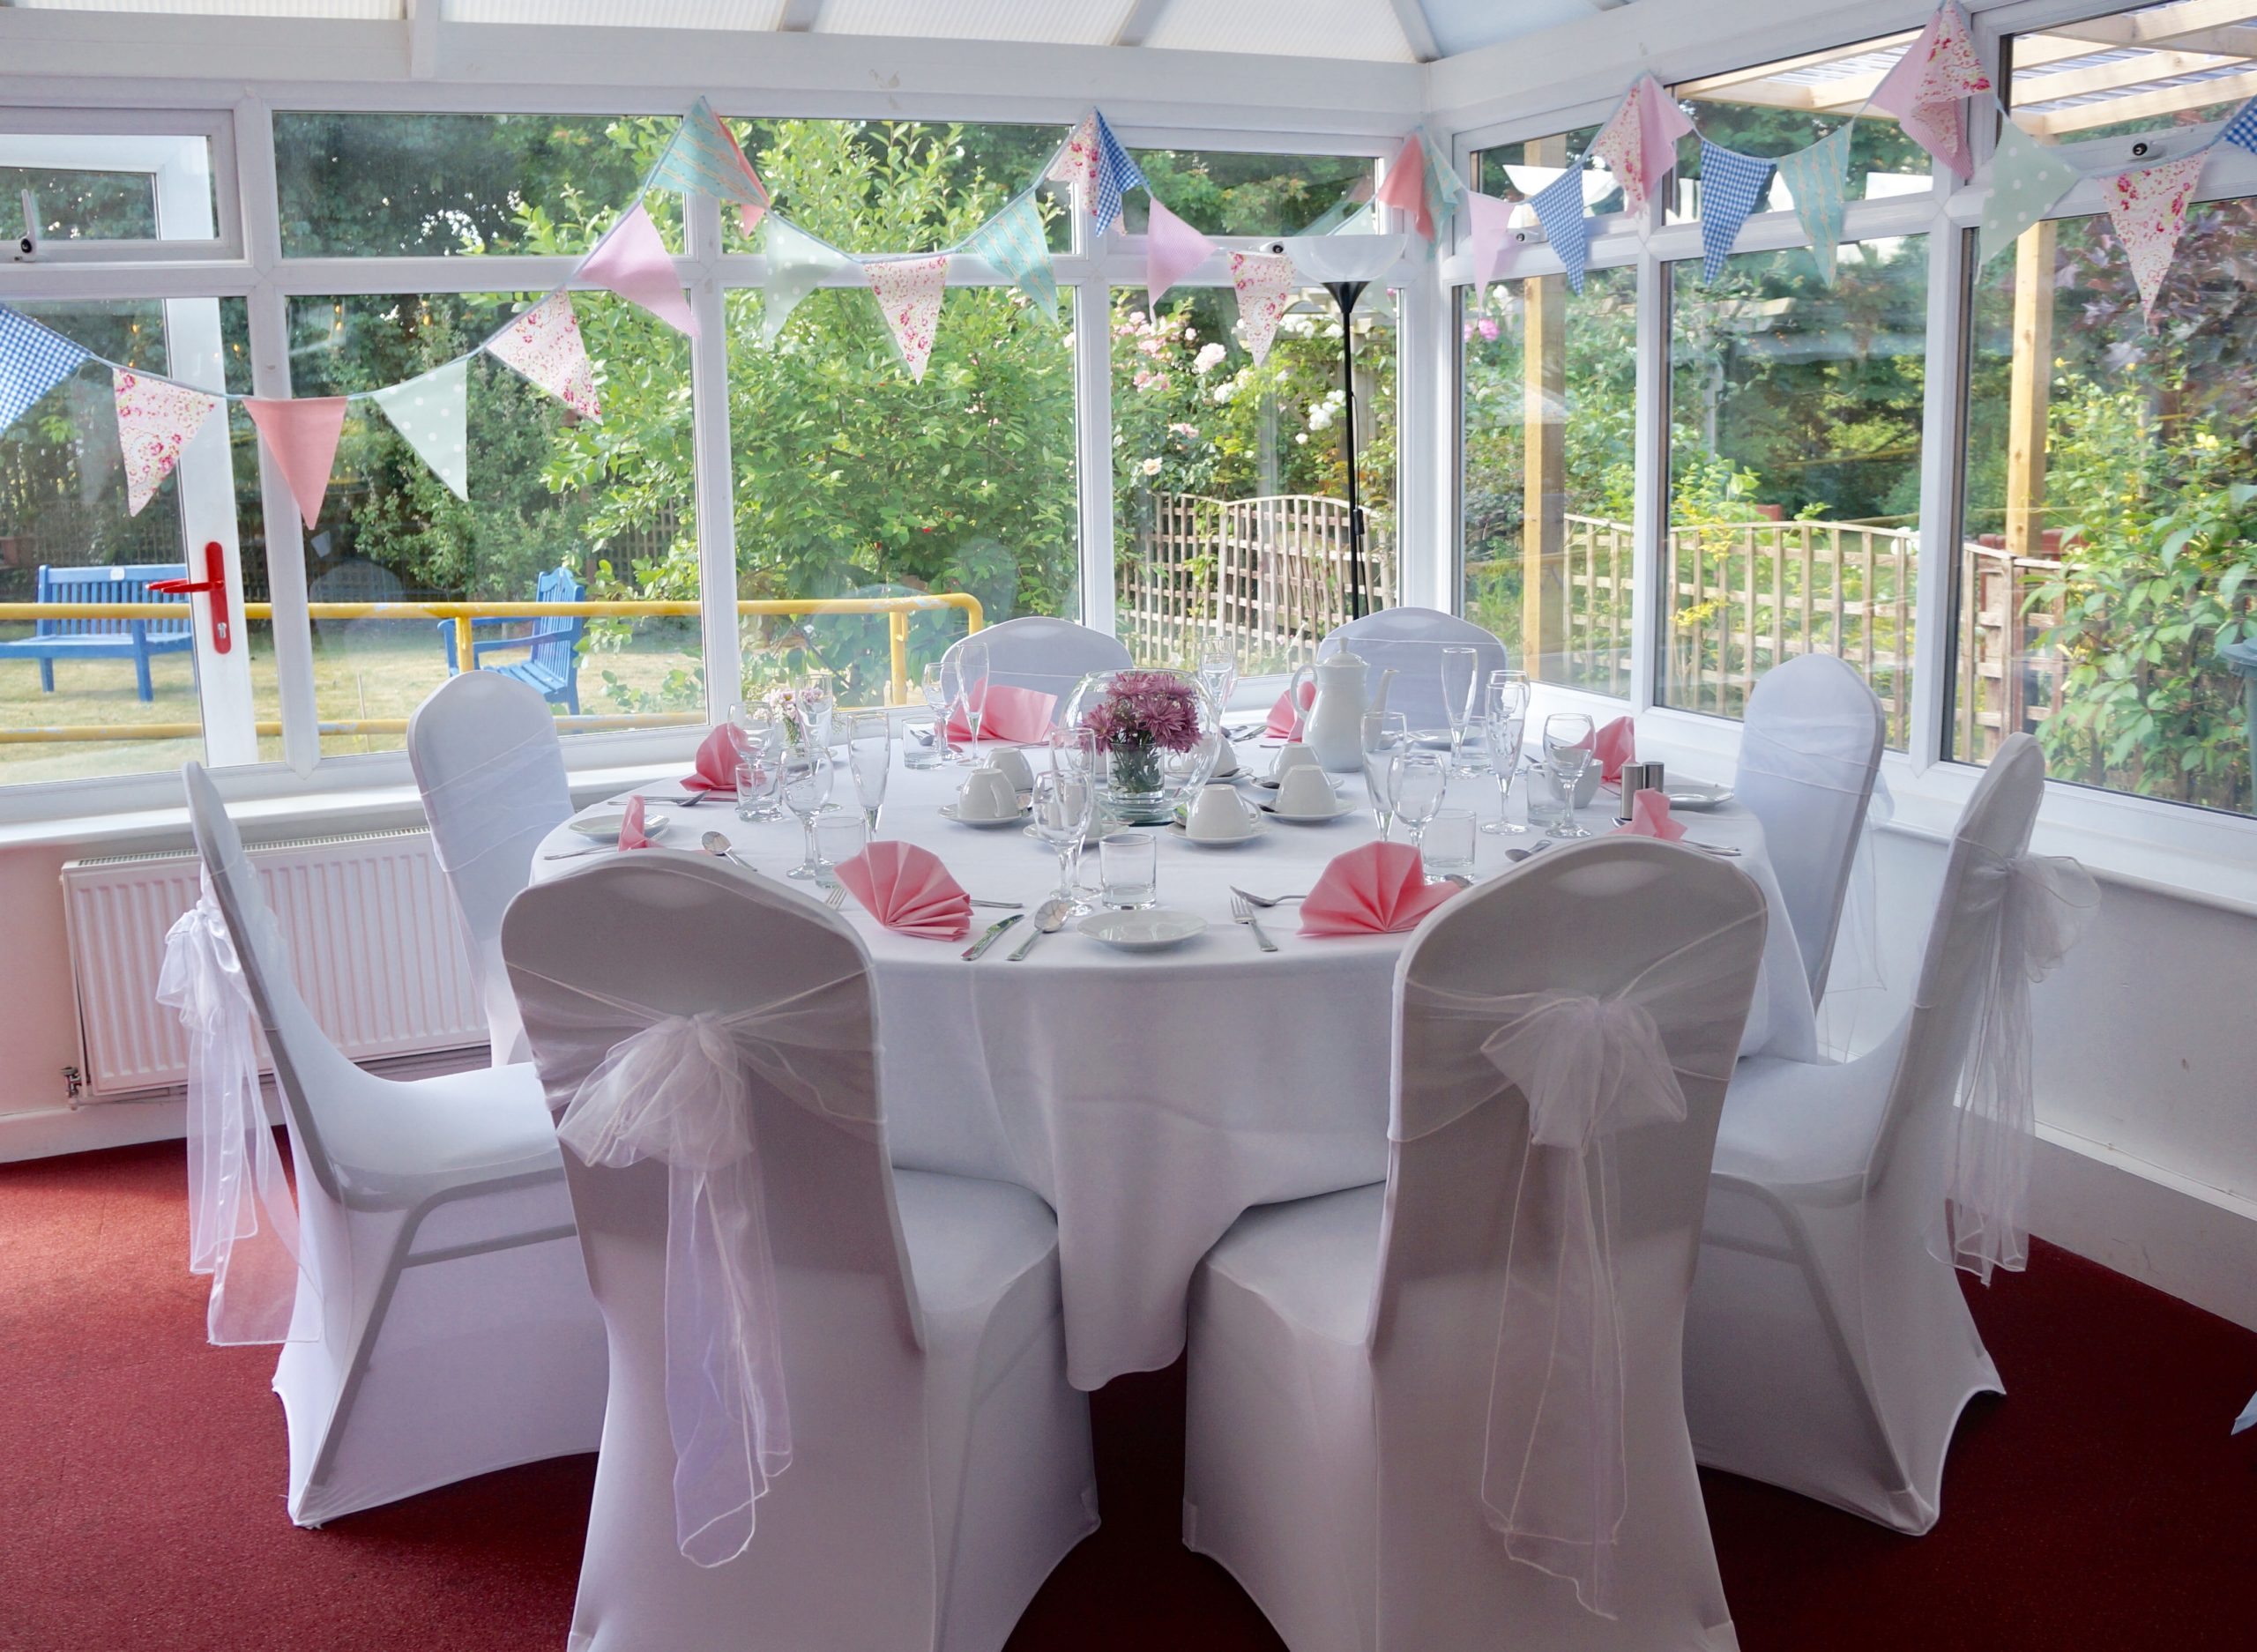 http://Eight%20place%20formal%20table%20setting%20with%20white%20linen%20and%20pink%20napkins.%20The%20chairs%20are%20dressed%20with%20white%20covers%20and%20large%20organza%20bows.%20The%20pastel%20coloured%20bunting%20frames%20the%20window%20showing%20the%20sensory%20garden%20on%20a%20sunny%20day.